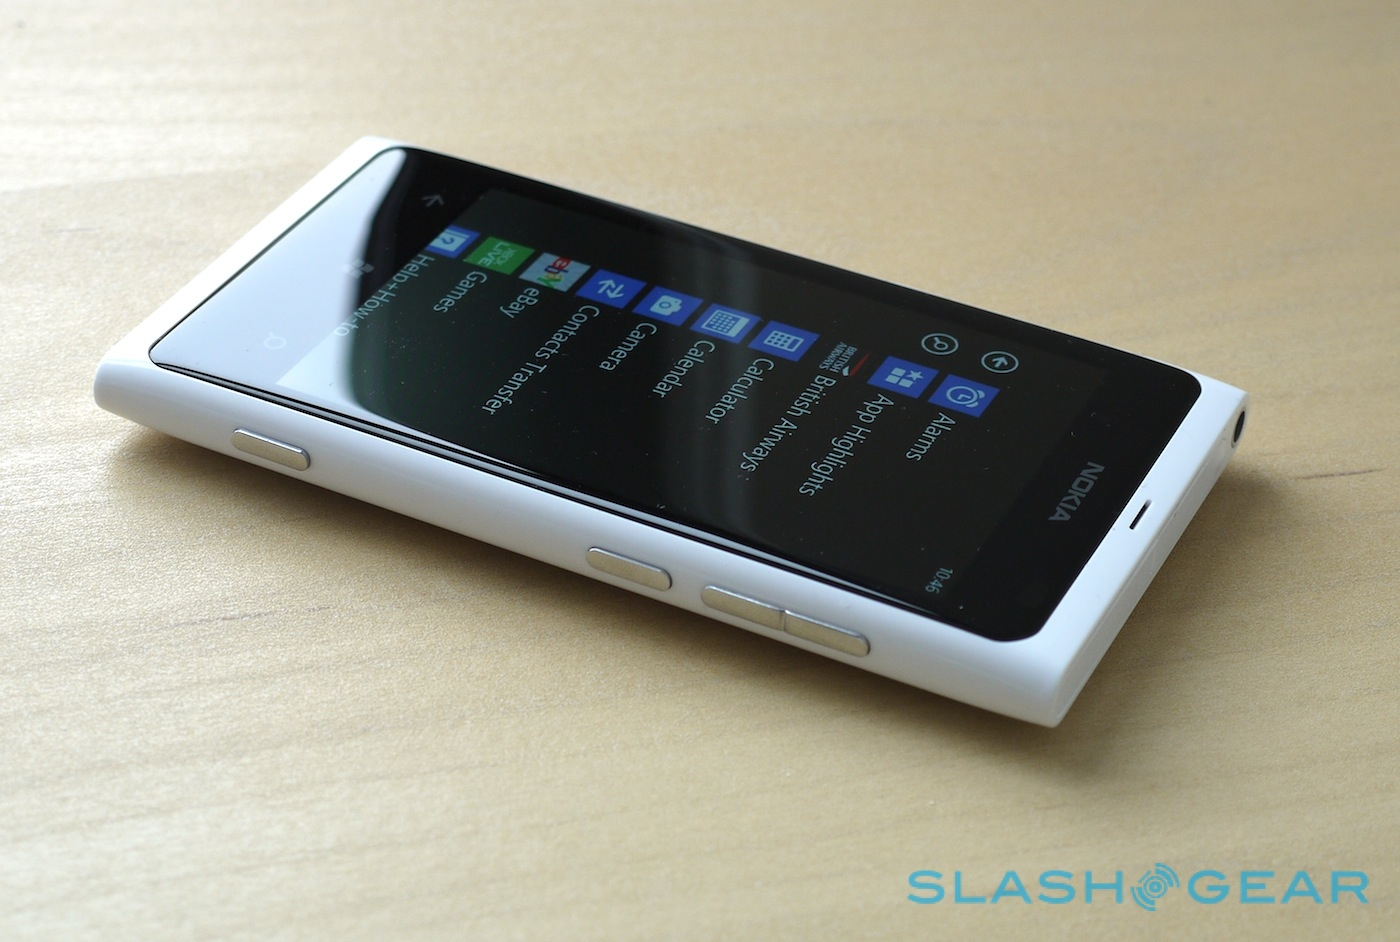 Nokia Lumia 800 White official: Hands-on